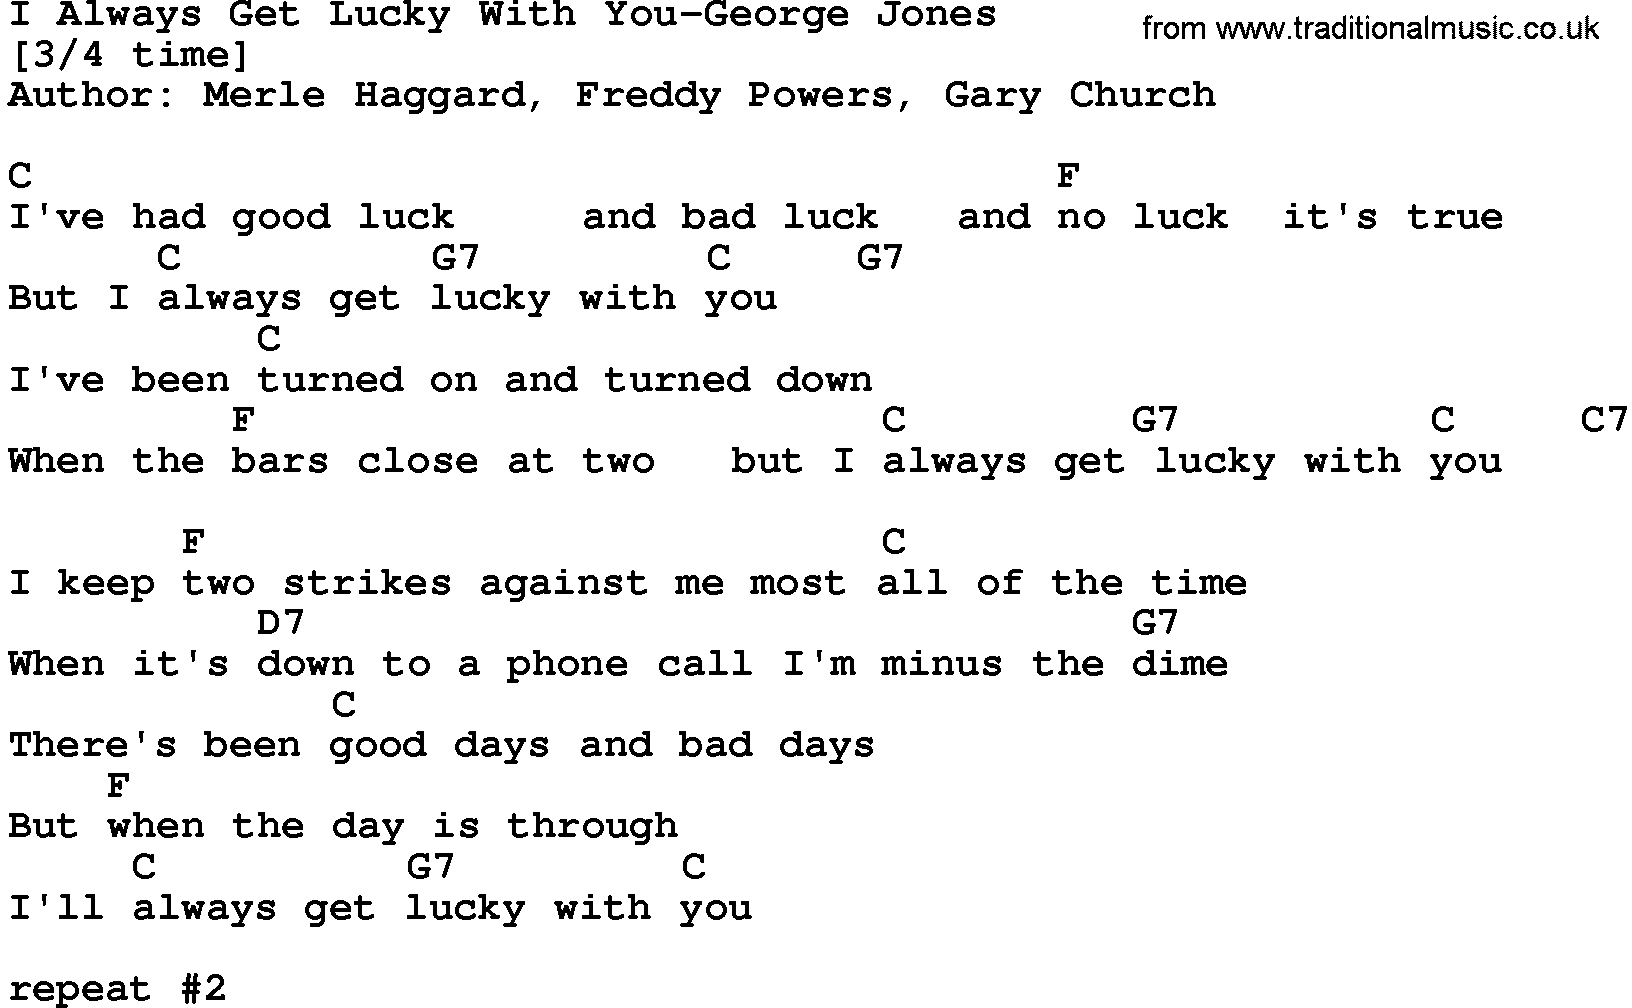 Country Music:I Always Get Lucky With You-George Jones Lyrics and Chords